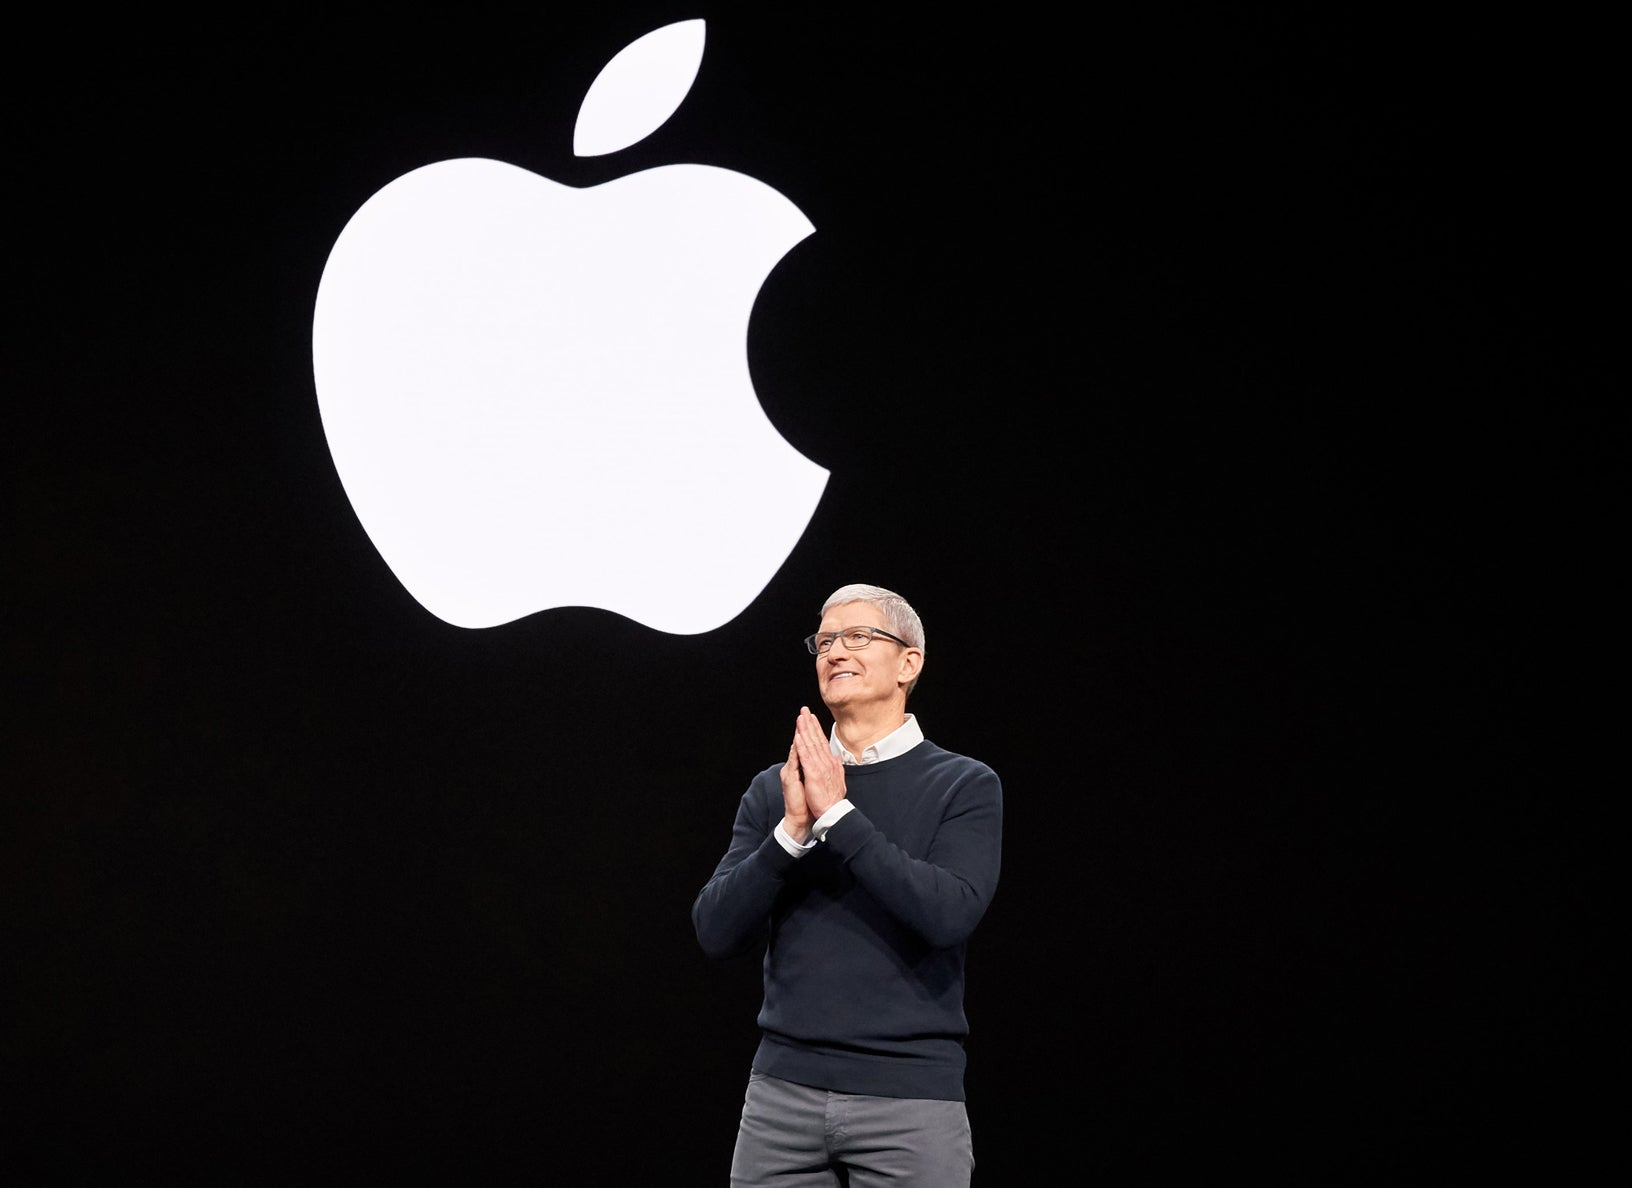 Buy, Sell, or Hold Apple Stock at $330? | The Motley Fool